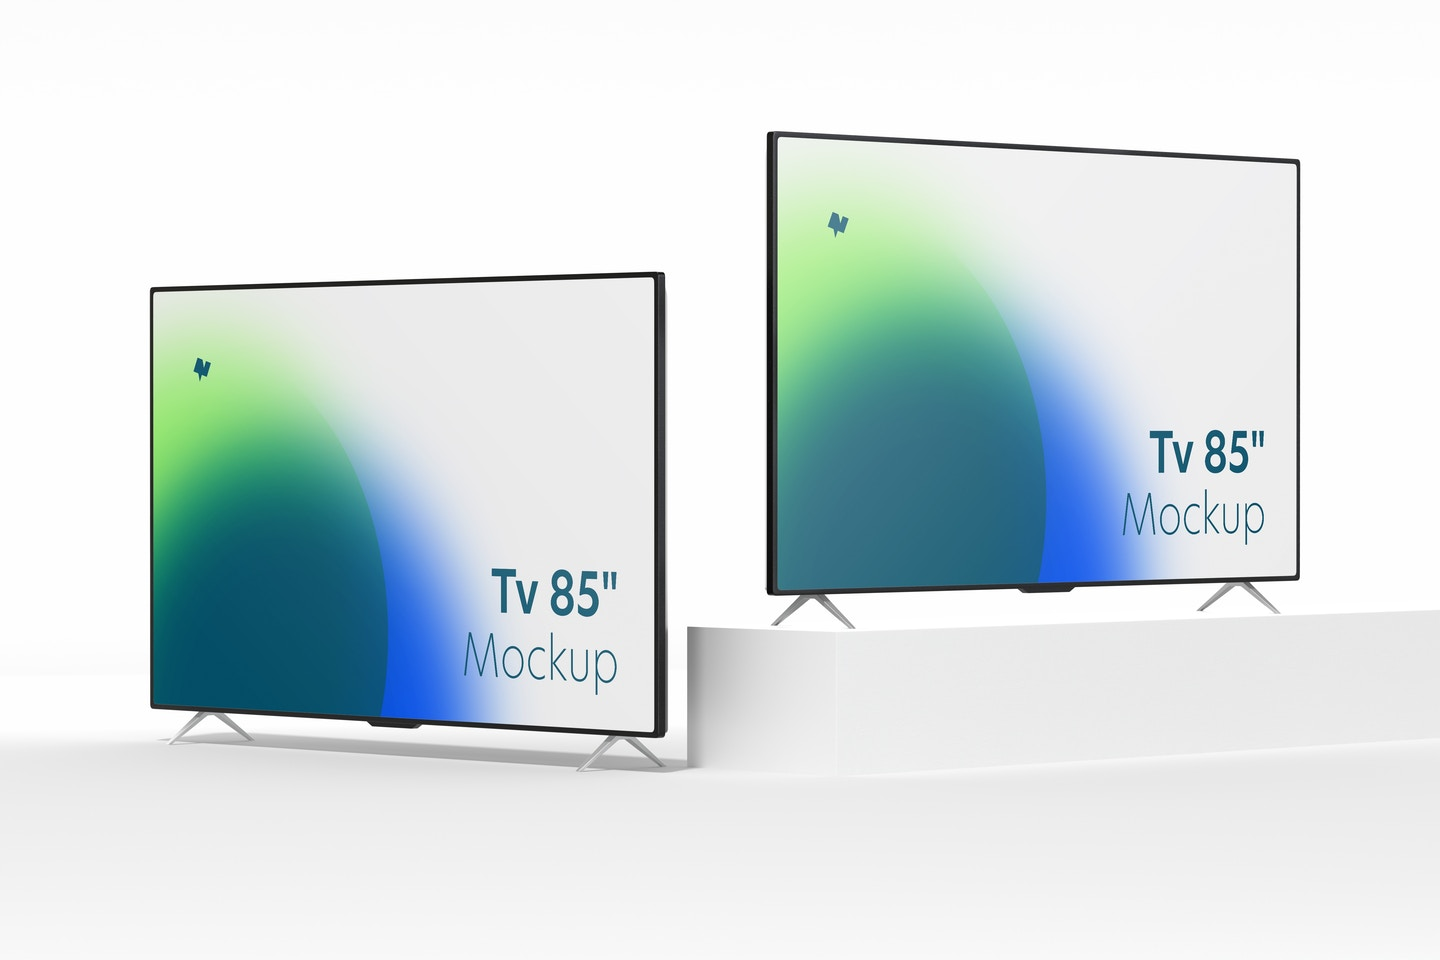 """TVs 85"""" Mockup, Left and Right View"""